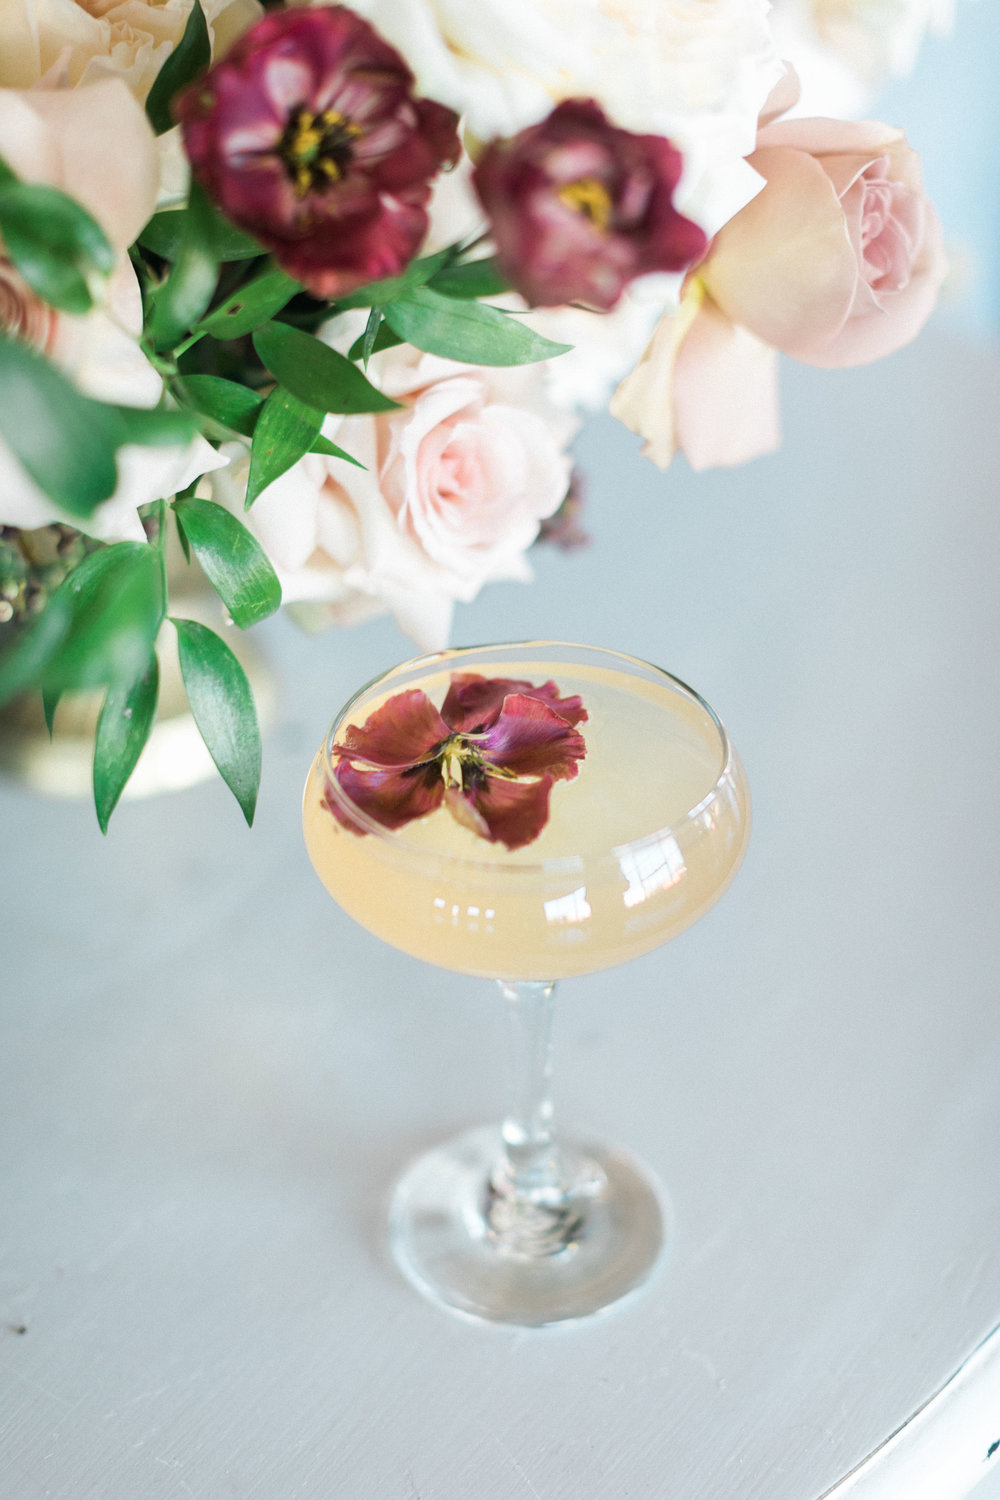 Fizz and Floral: A Creative Pairing of Speciality Beverages and Beautiful Blooms  - Brides of North Texas